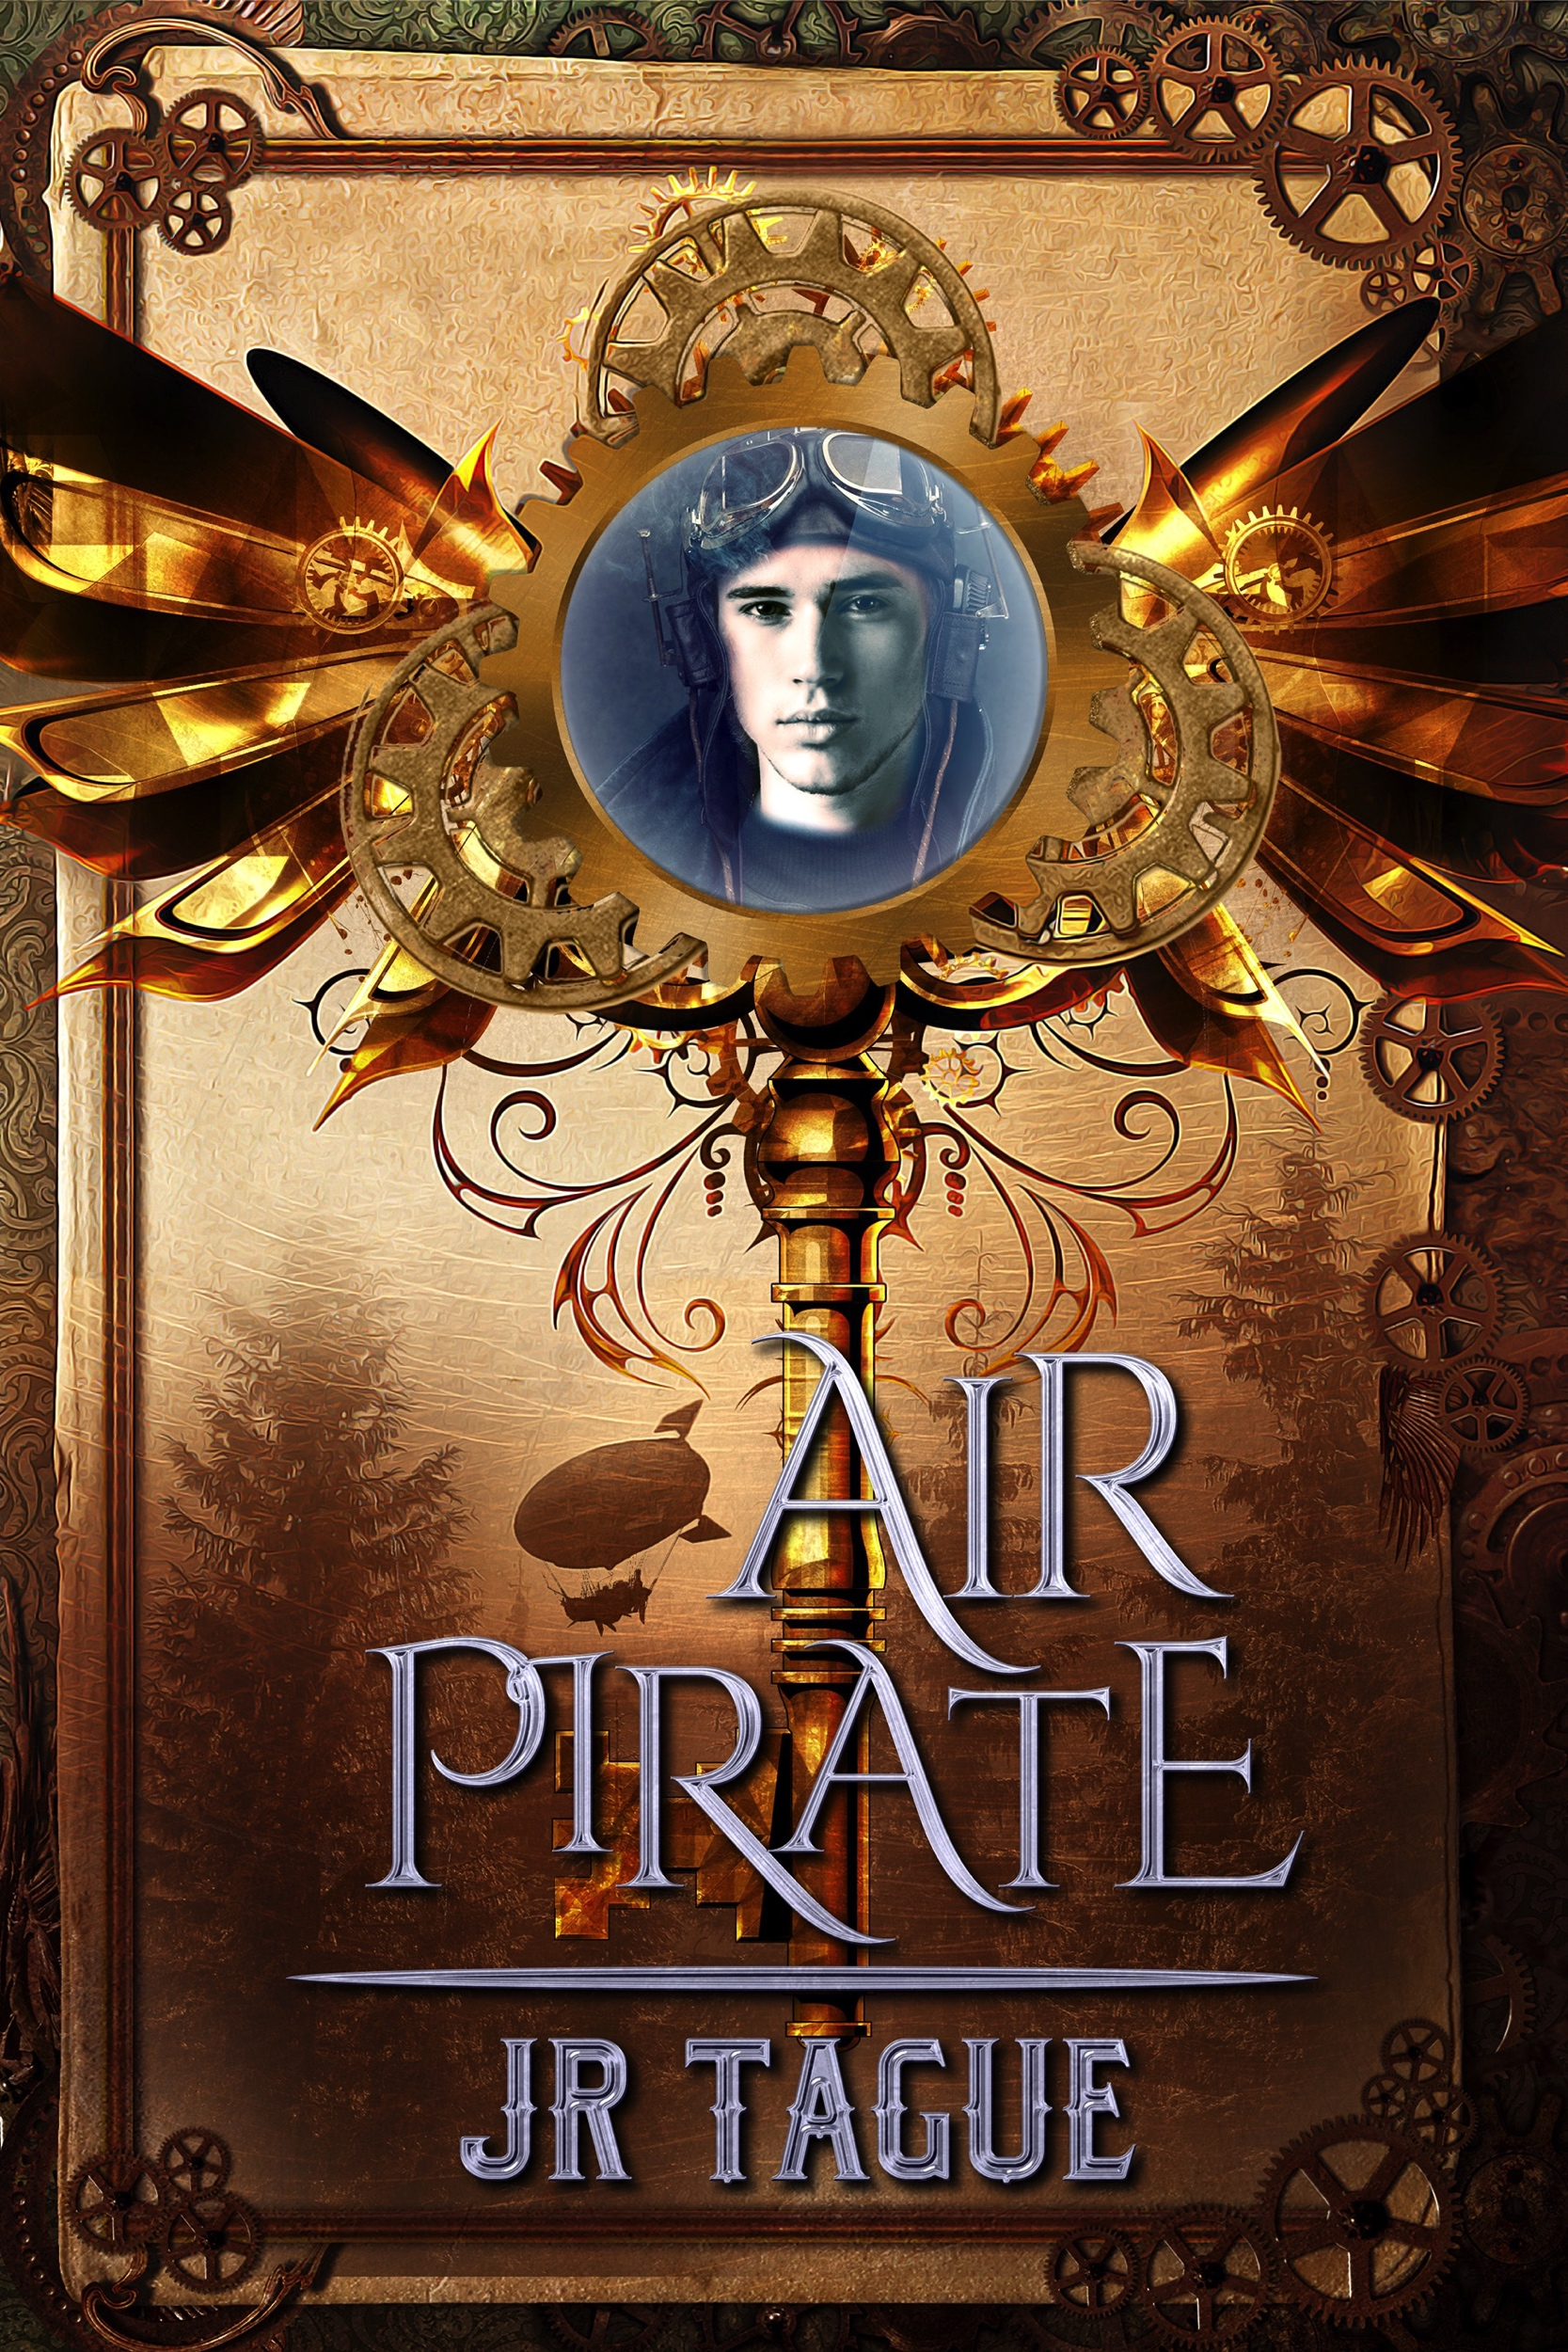 Air Pirate (Book One) - Townsman thief-for-hire, Darien North, survives a crash landing when his airship explodes over hostile Woodsman territory. He even manages to ingratiate himself to members of the tribe that finds him, including a beautiful girl with wild hair and deadly archery skills. For the first time in his life, Darien starts to feel at home. But his happiness is cut short when the Town's commissioner blackmails him into stealing a secret heirloom from the Woodsman tribes.After years of being a loner, Darien is forced to choose between competing loyalties: friends or family, woods or town. And when he learns of an old, deadly weapon that could put all of humanity at risk, he must decide what—or whom—he's willing to sacrifice to save them all.